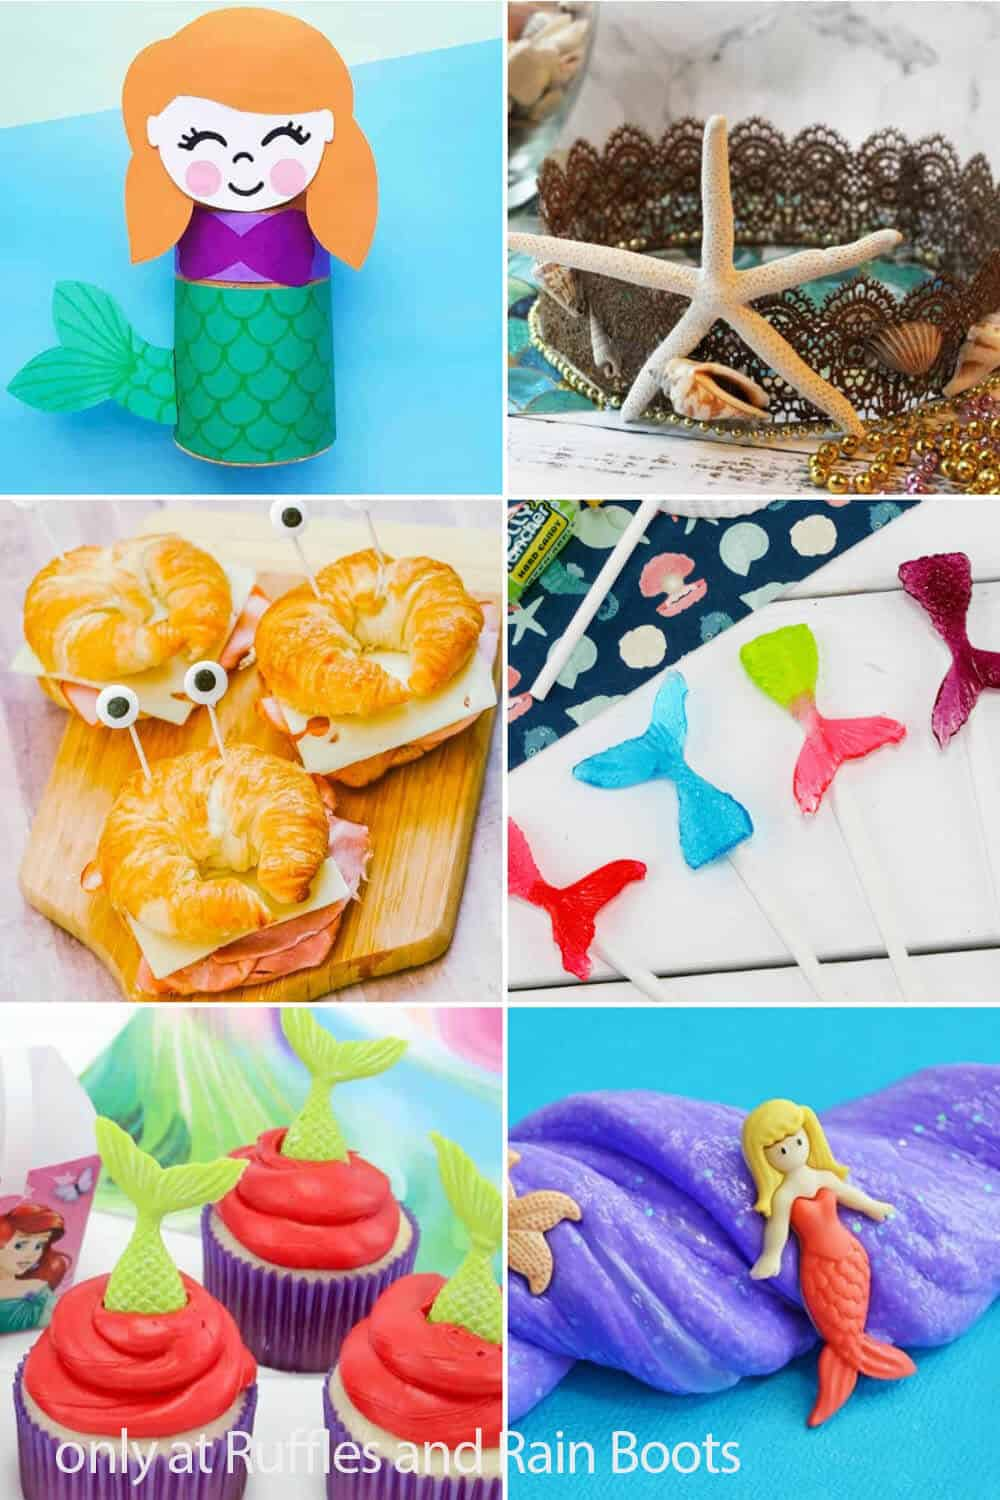 photo collage of party ideas for a mermaid theme